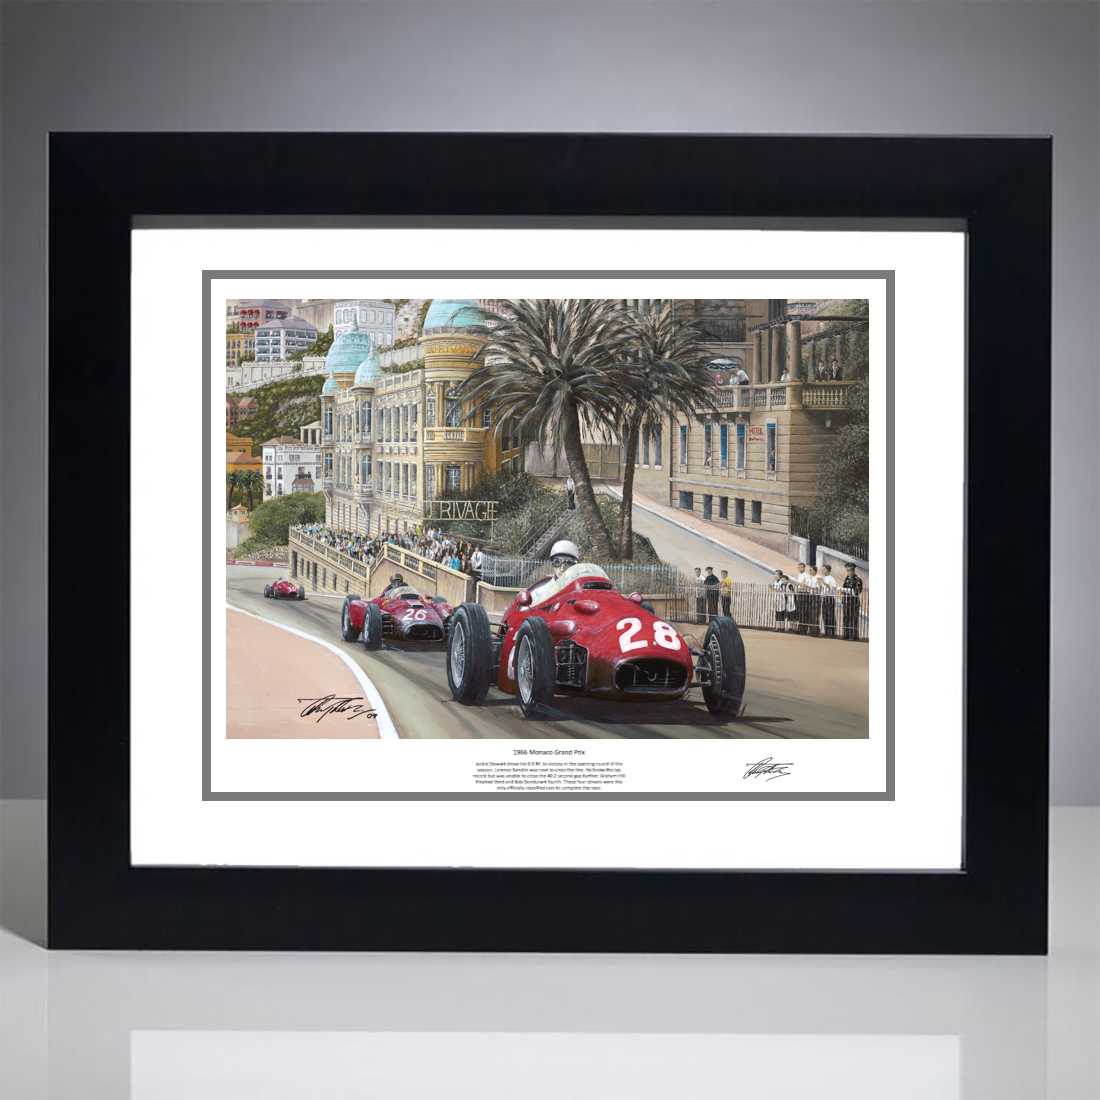 1956 Monaco Print - Signed by the Artist